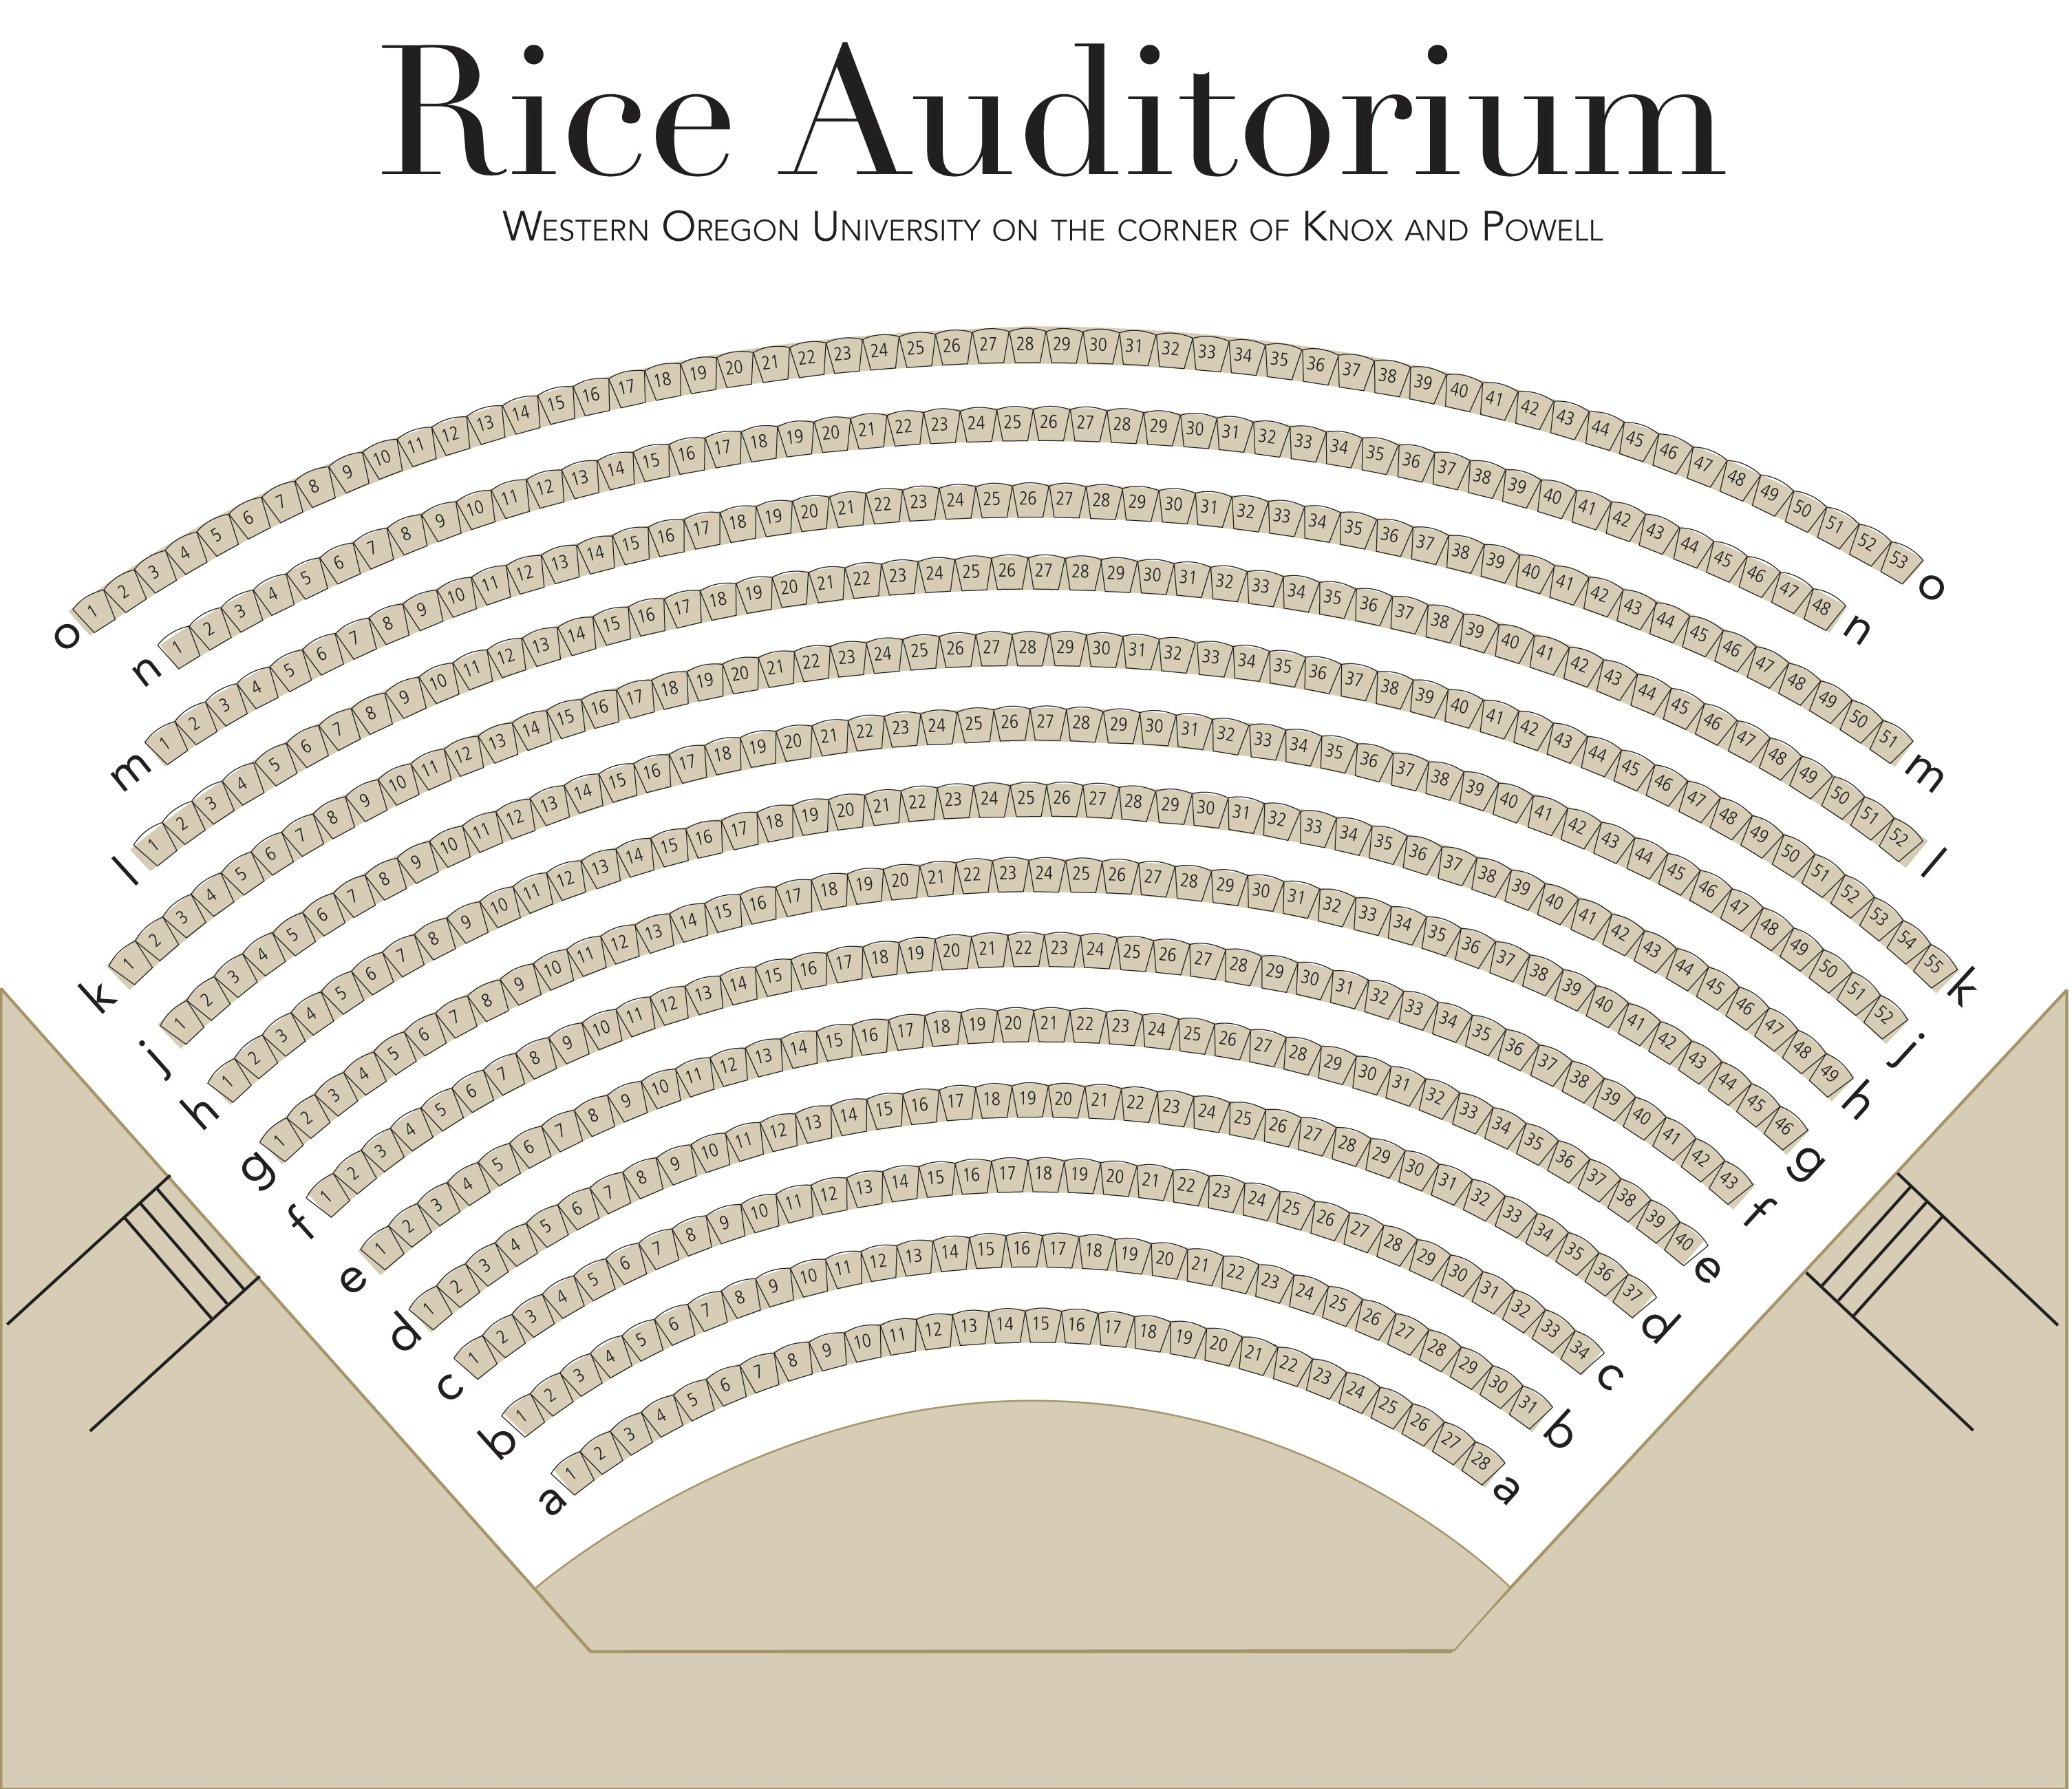 Rice Aud Seating Chart